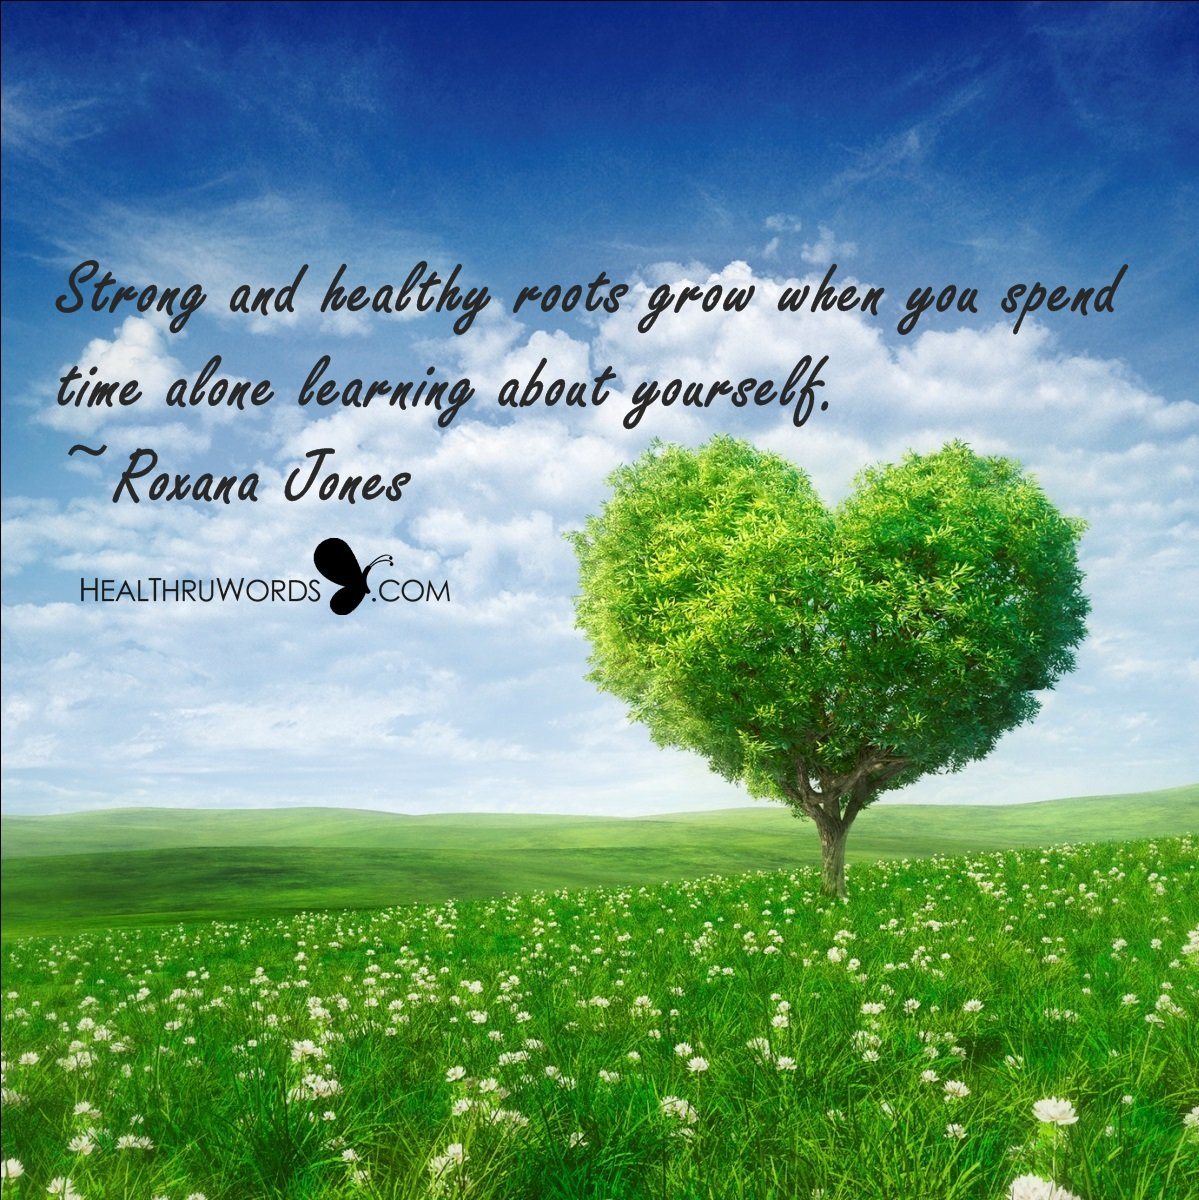 Lonely Roots Inspirational Images And Quotes